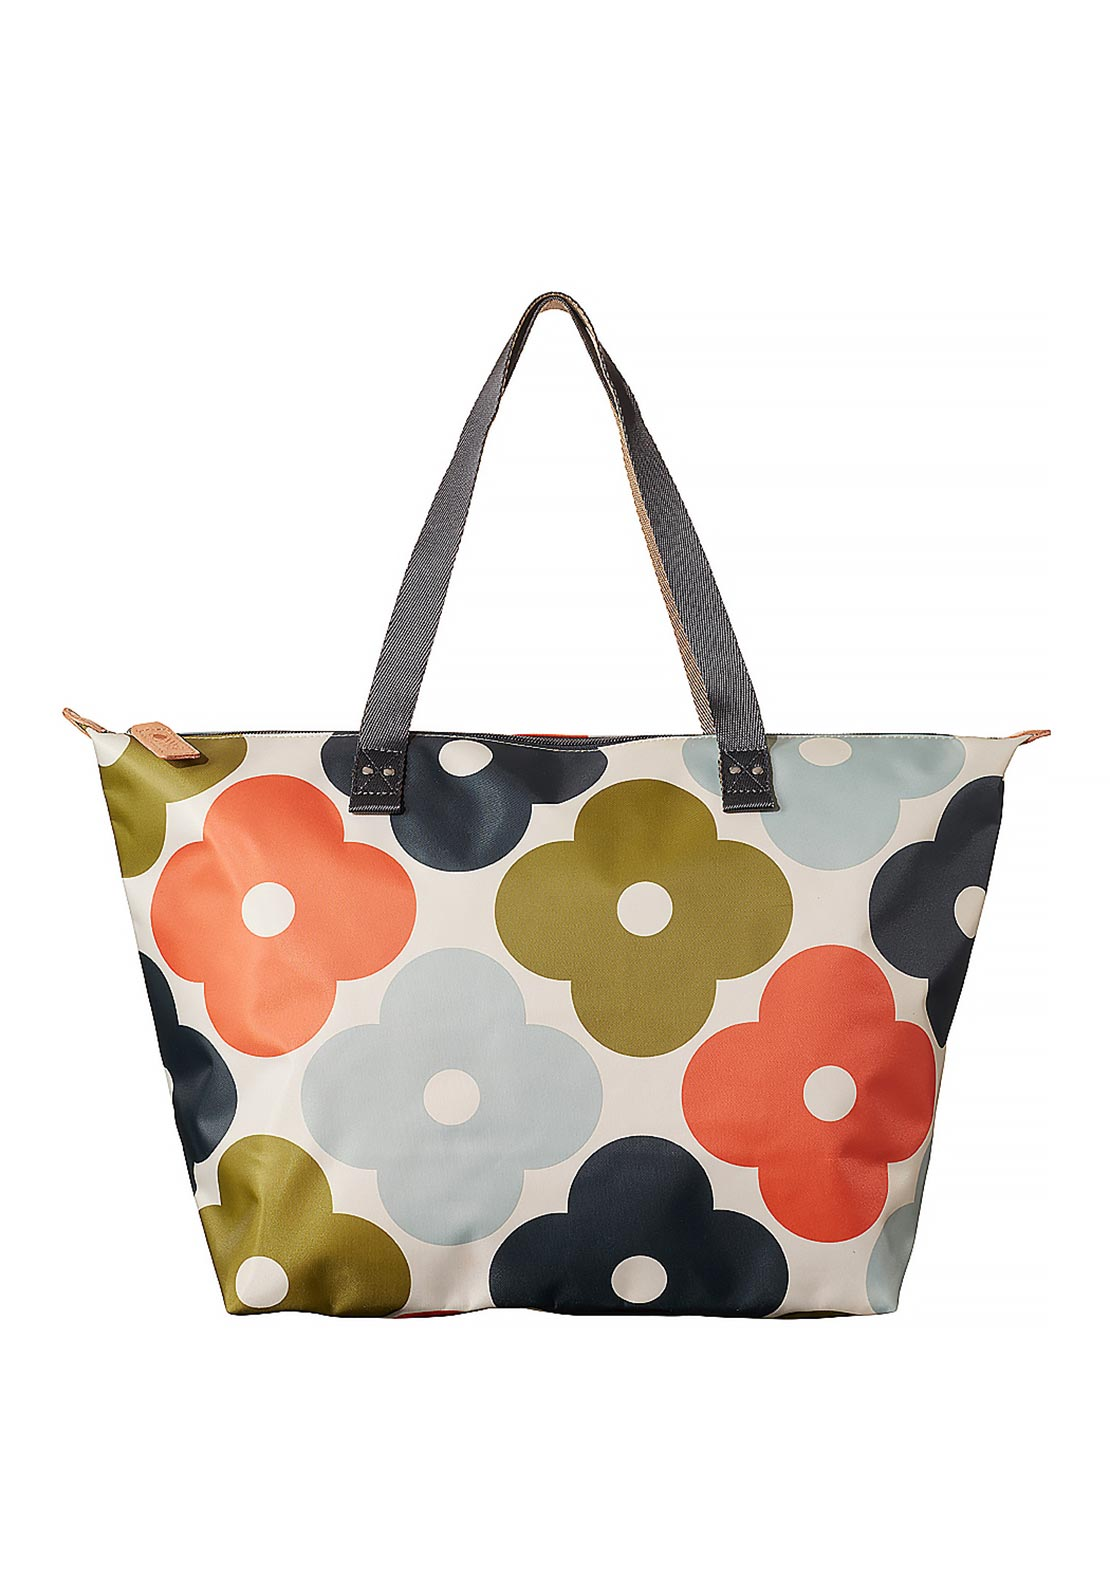 Orla Kiely Giant Flower Spot Print Shopper Bag, Multi coloured